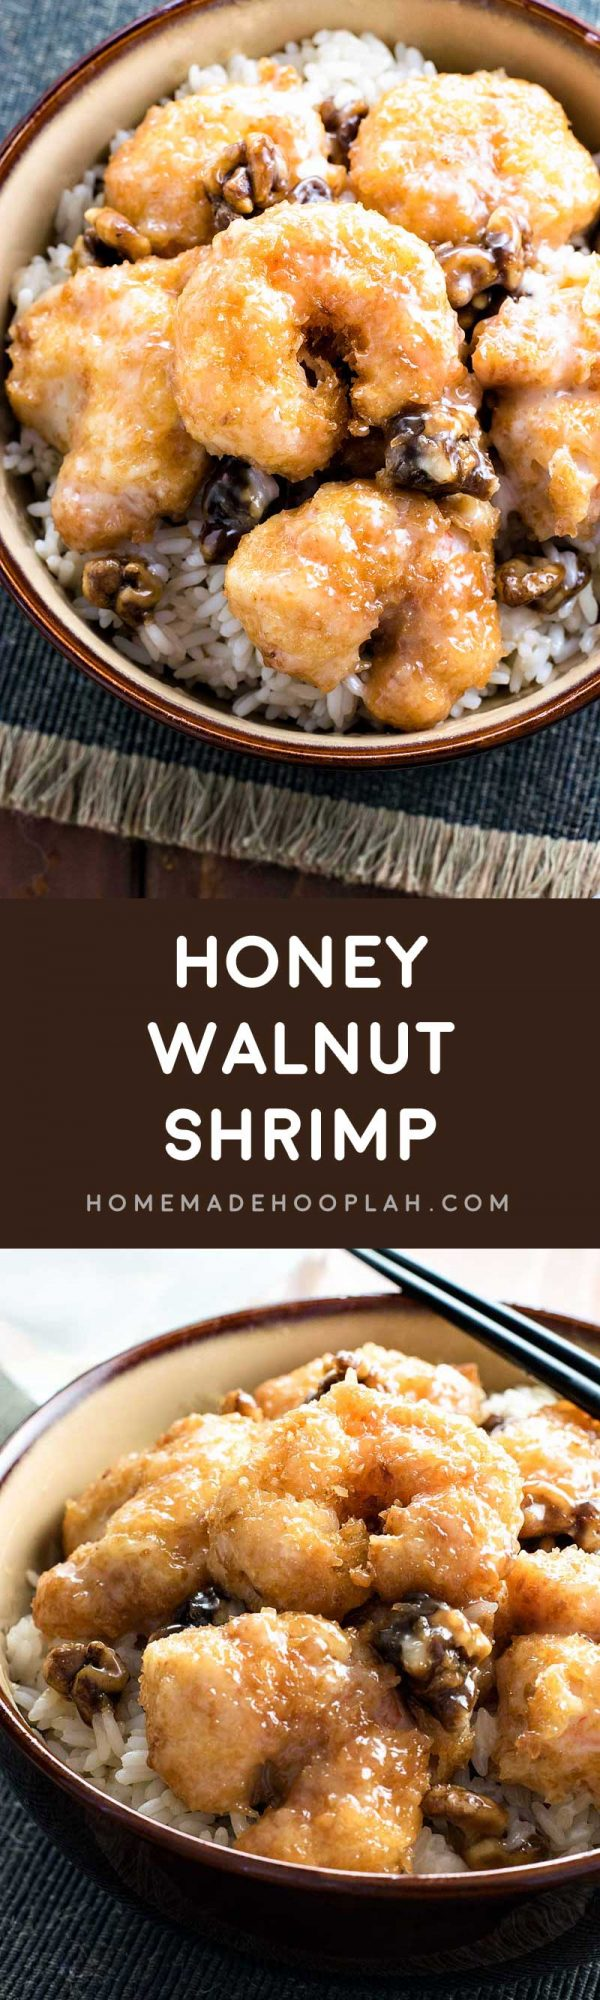 Honey Walnut Shrimp! Skip the takeout and make honey walnut shrimp at home. Light tempura, tender shrimp, candied walnuts, all covered in a sweetly tart sauce. | HomemadeHooplah.com